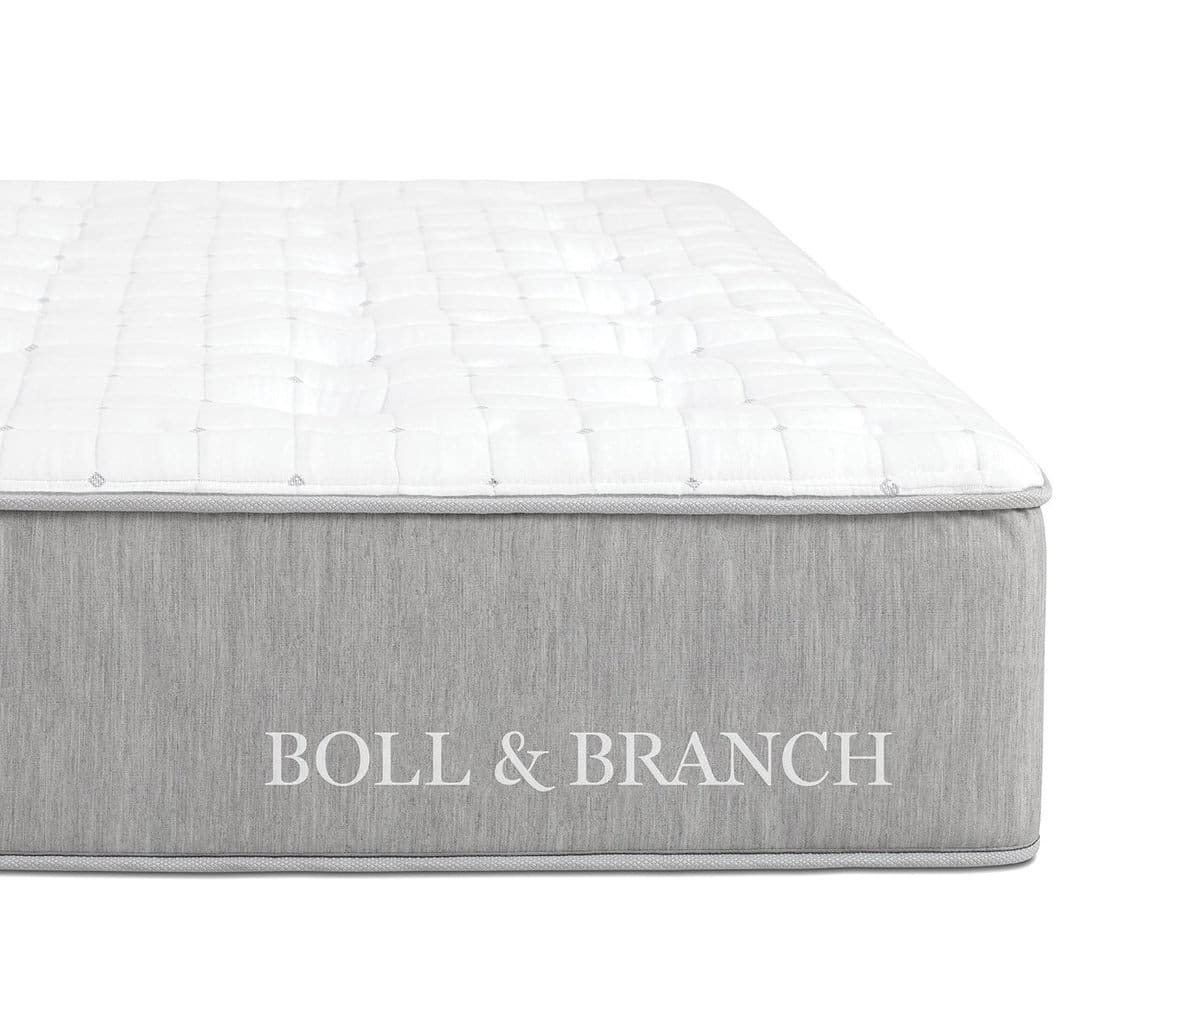 Boll & Branch Mattress Giveaway Giveaway Image